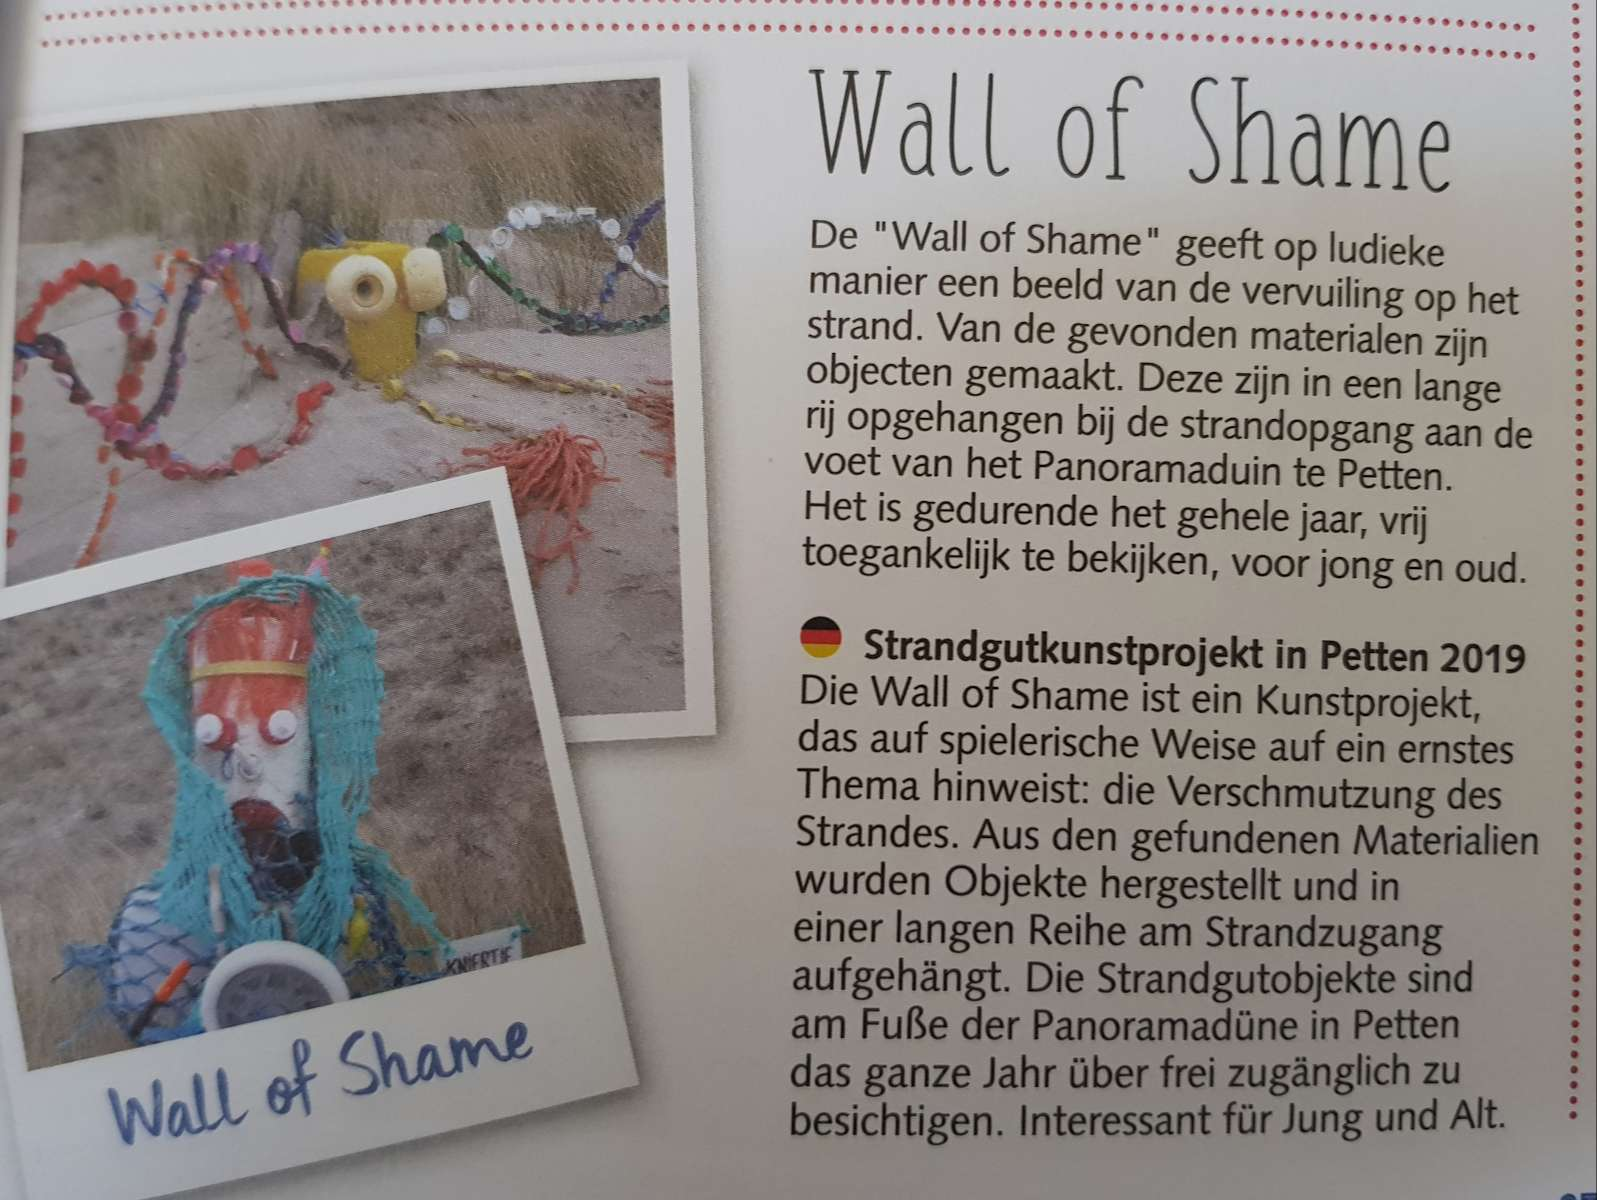 Wall of Shame in Petten